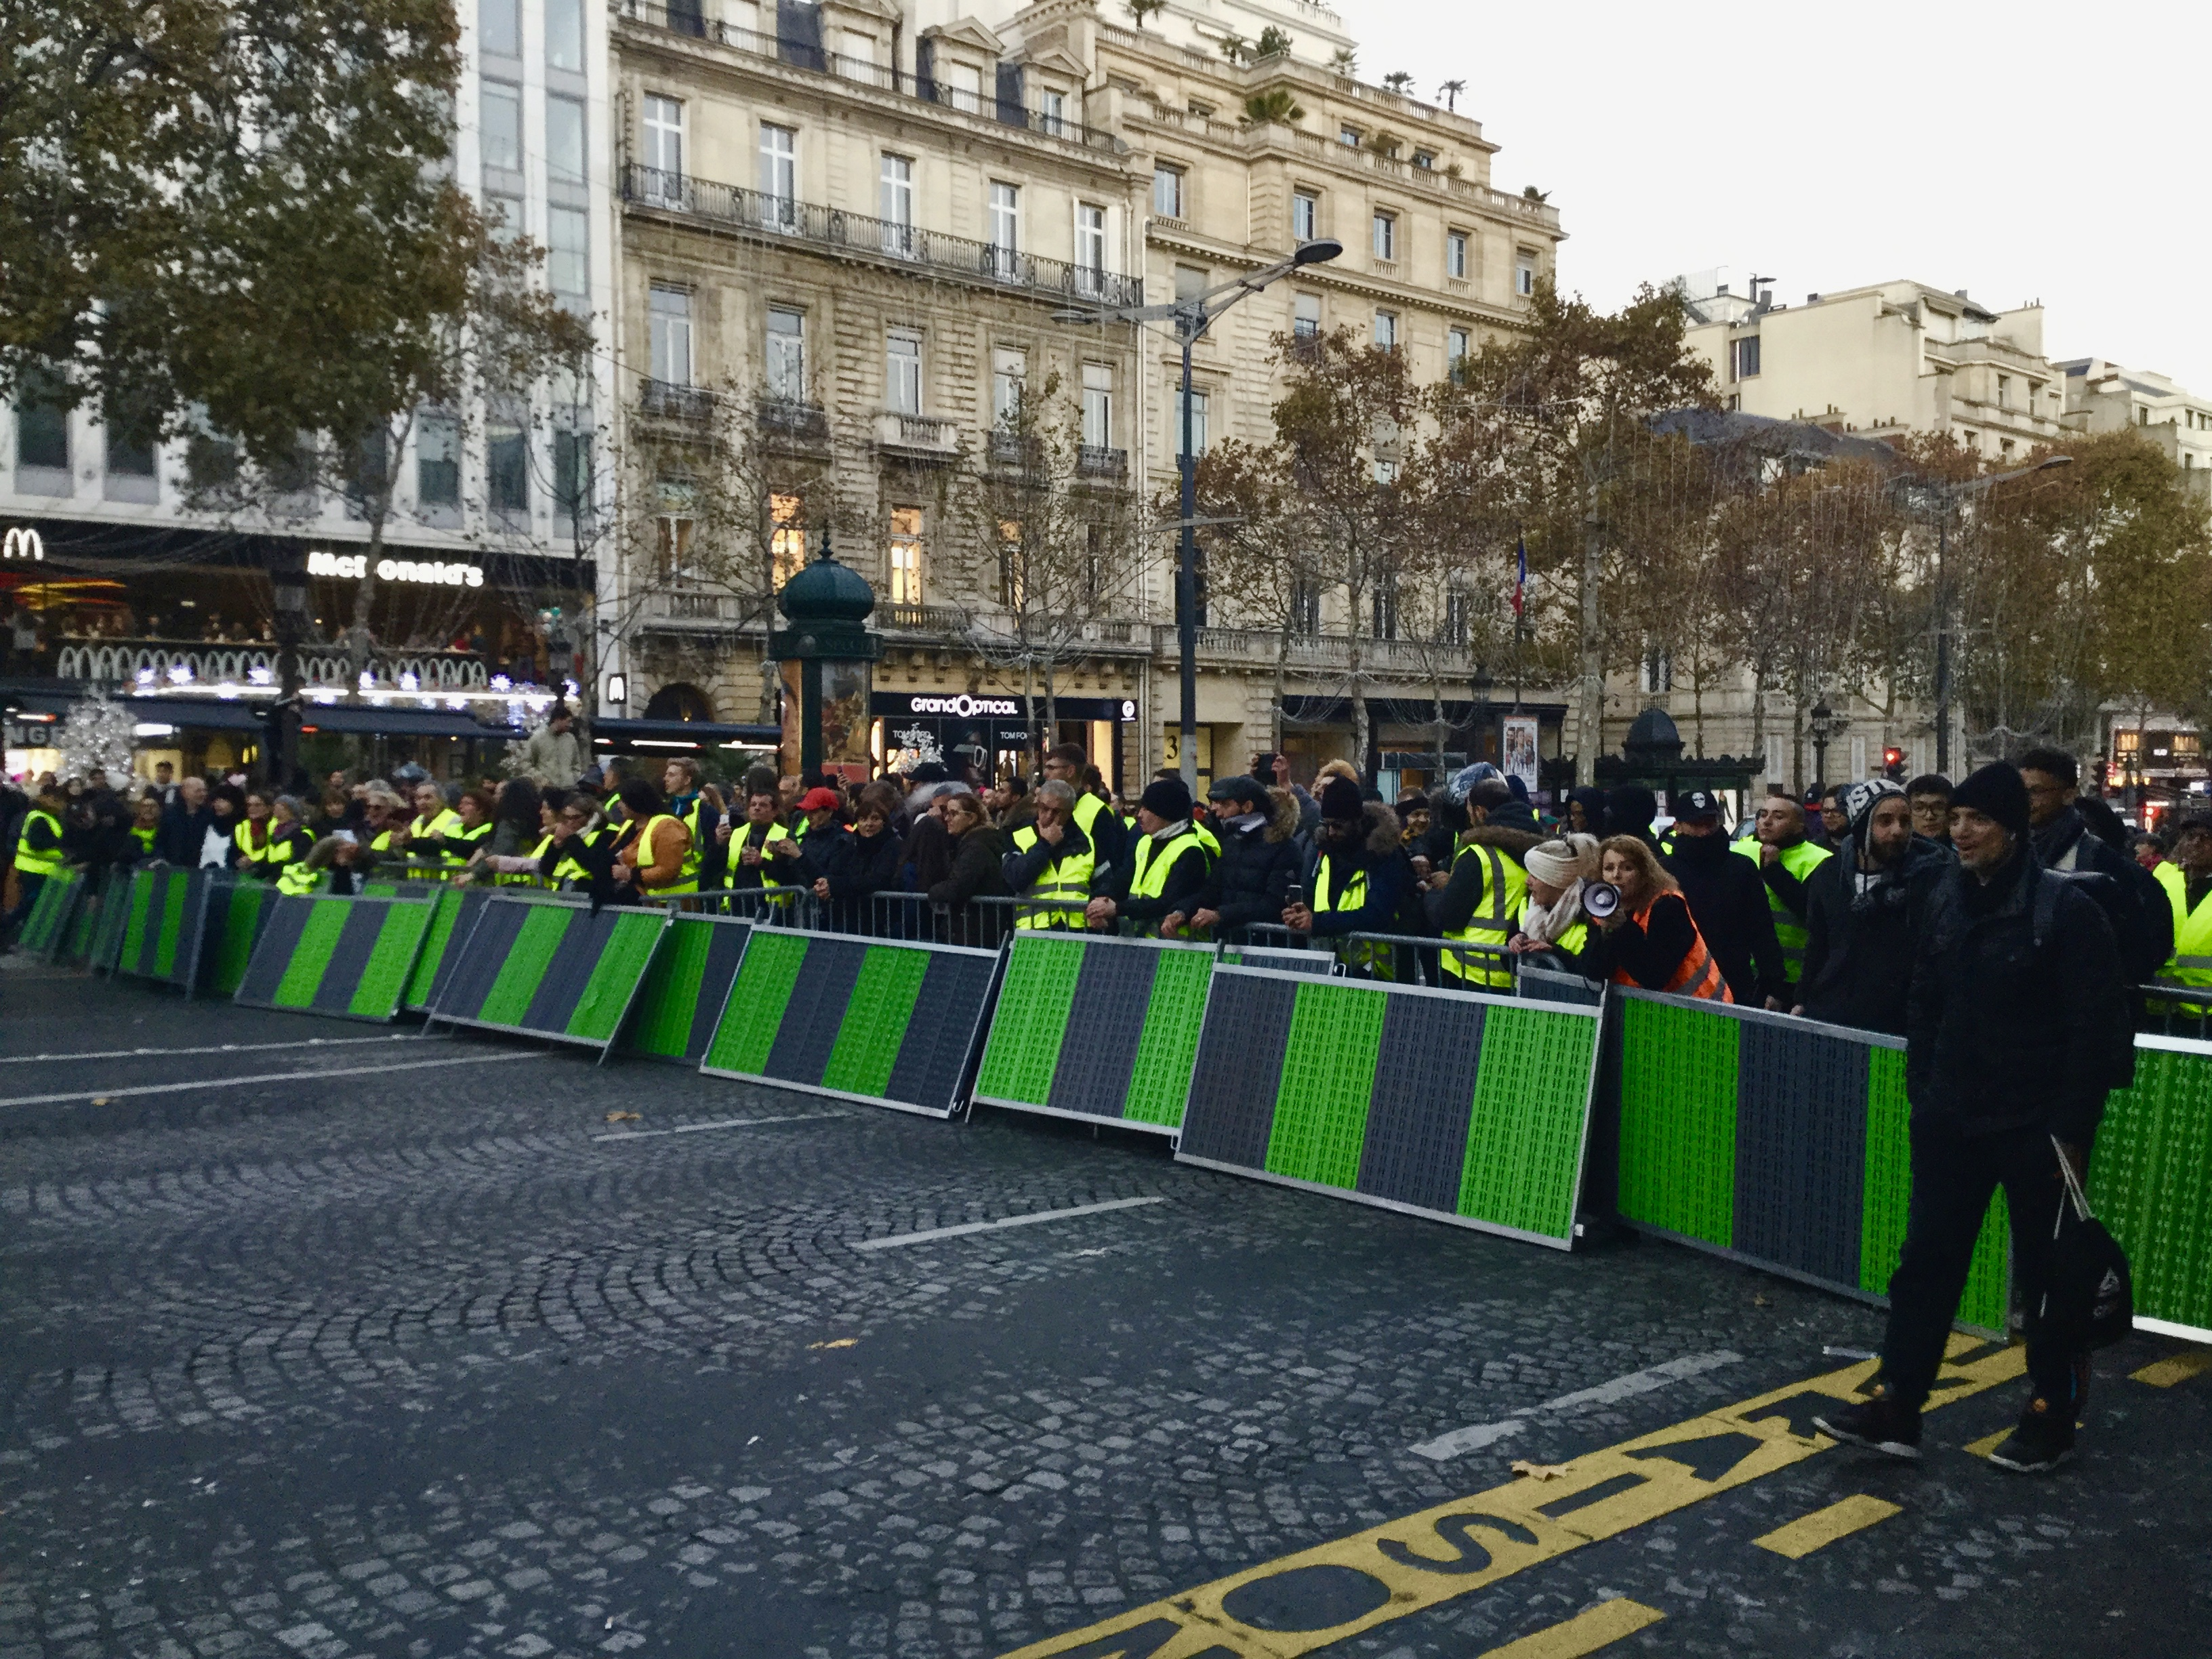 manifestation parisienne des gilets jaunes paris le 17 novembre 2018 radioparleur. Black Bedroom Furniture Sets. Home Design Ideas